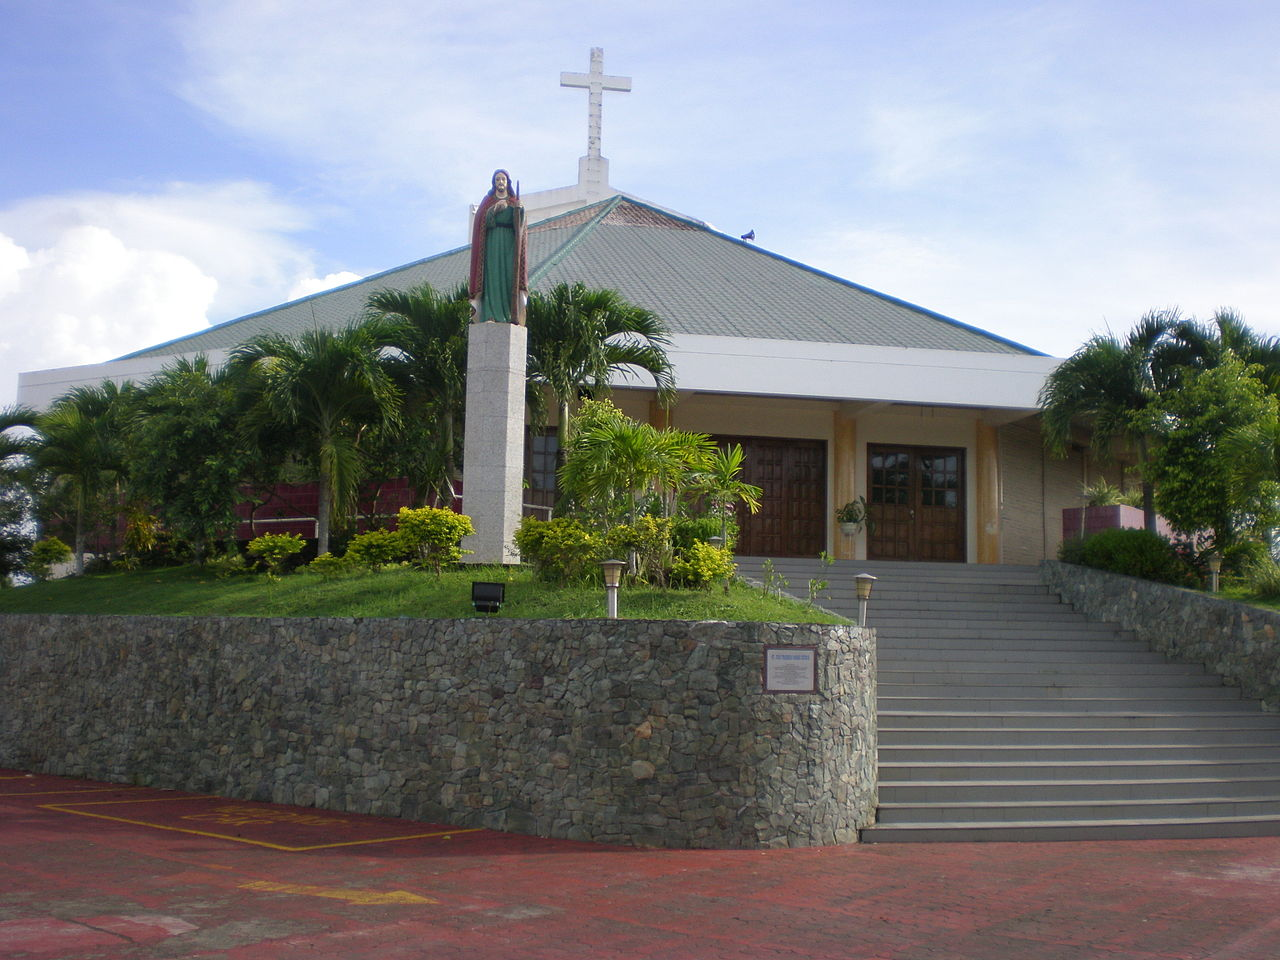 Jef and heiz wedding checklist jef and heiz wedding saint jude thaddeus parish in concepcion grande naga city was canonically erected on june 28 1997 upon the recommendation of rev stopboris Image collections